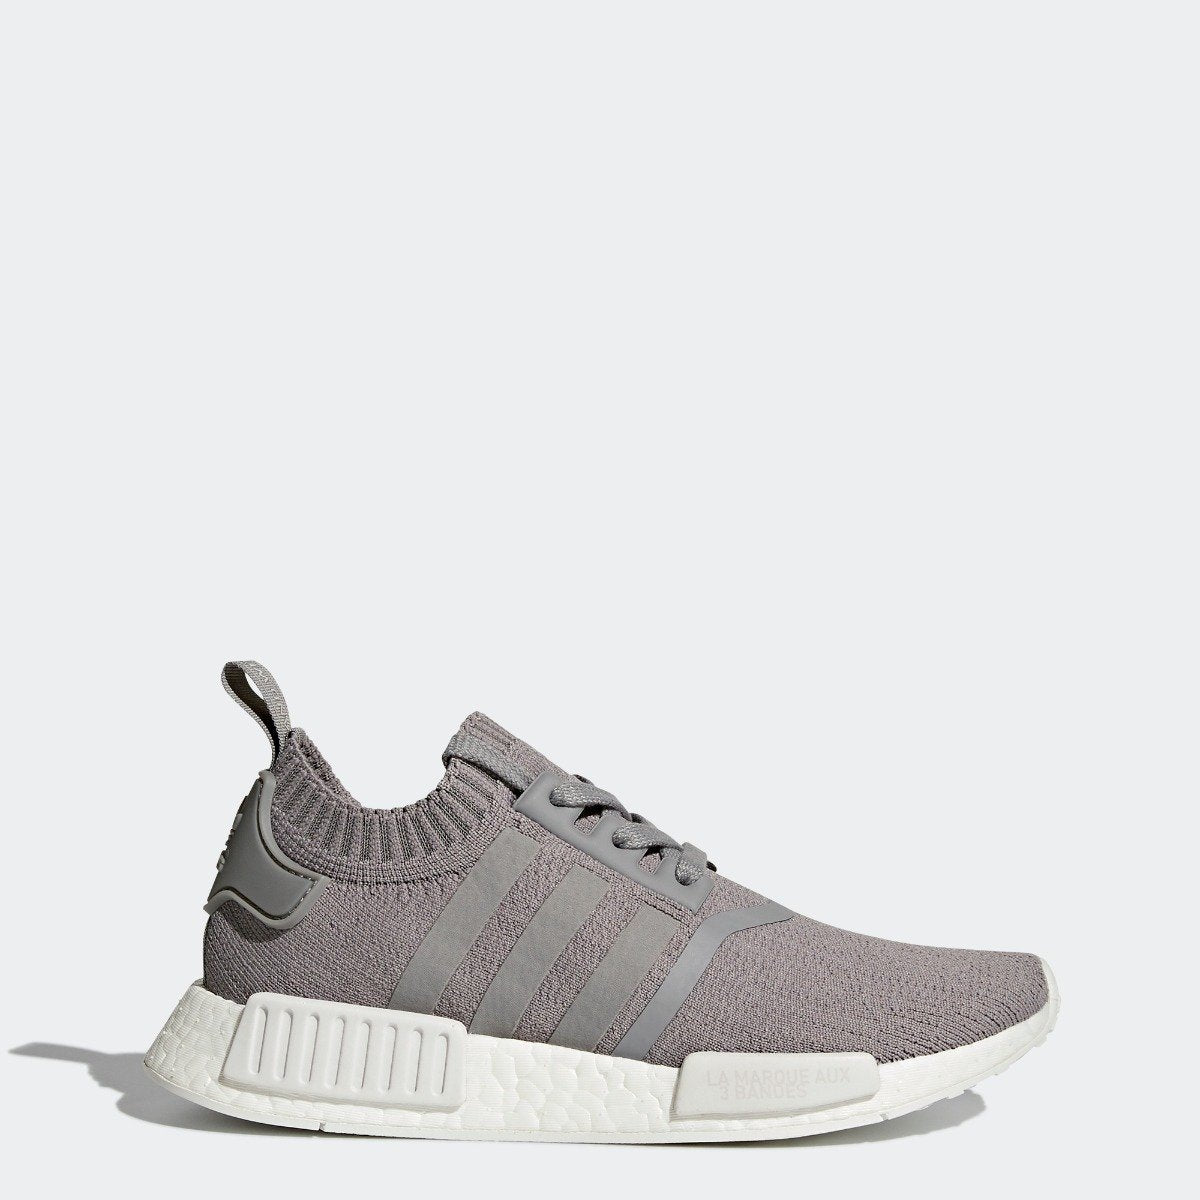 Women s adidas Originals NMD R1 Primeknit Shoes Grey with White ... 788fc9784